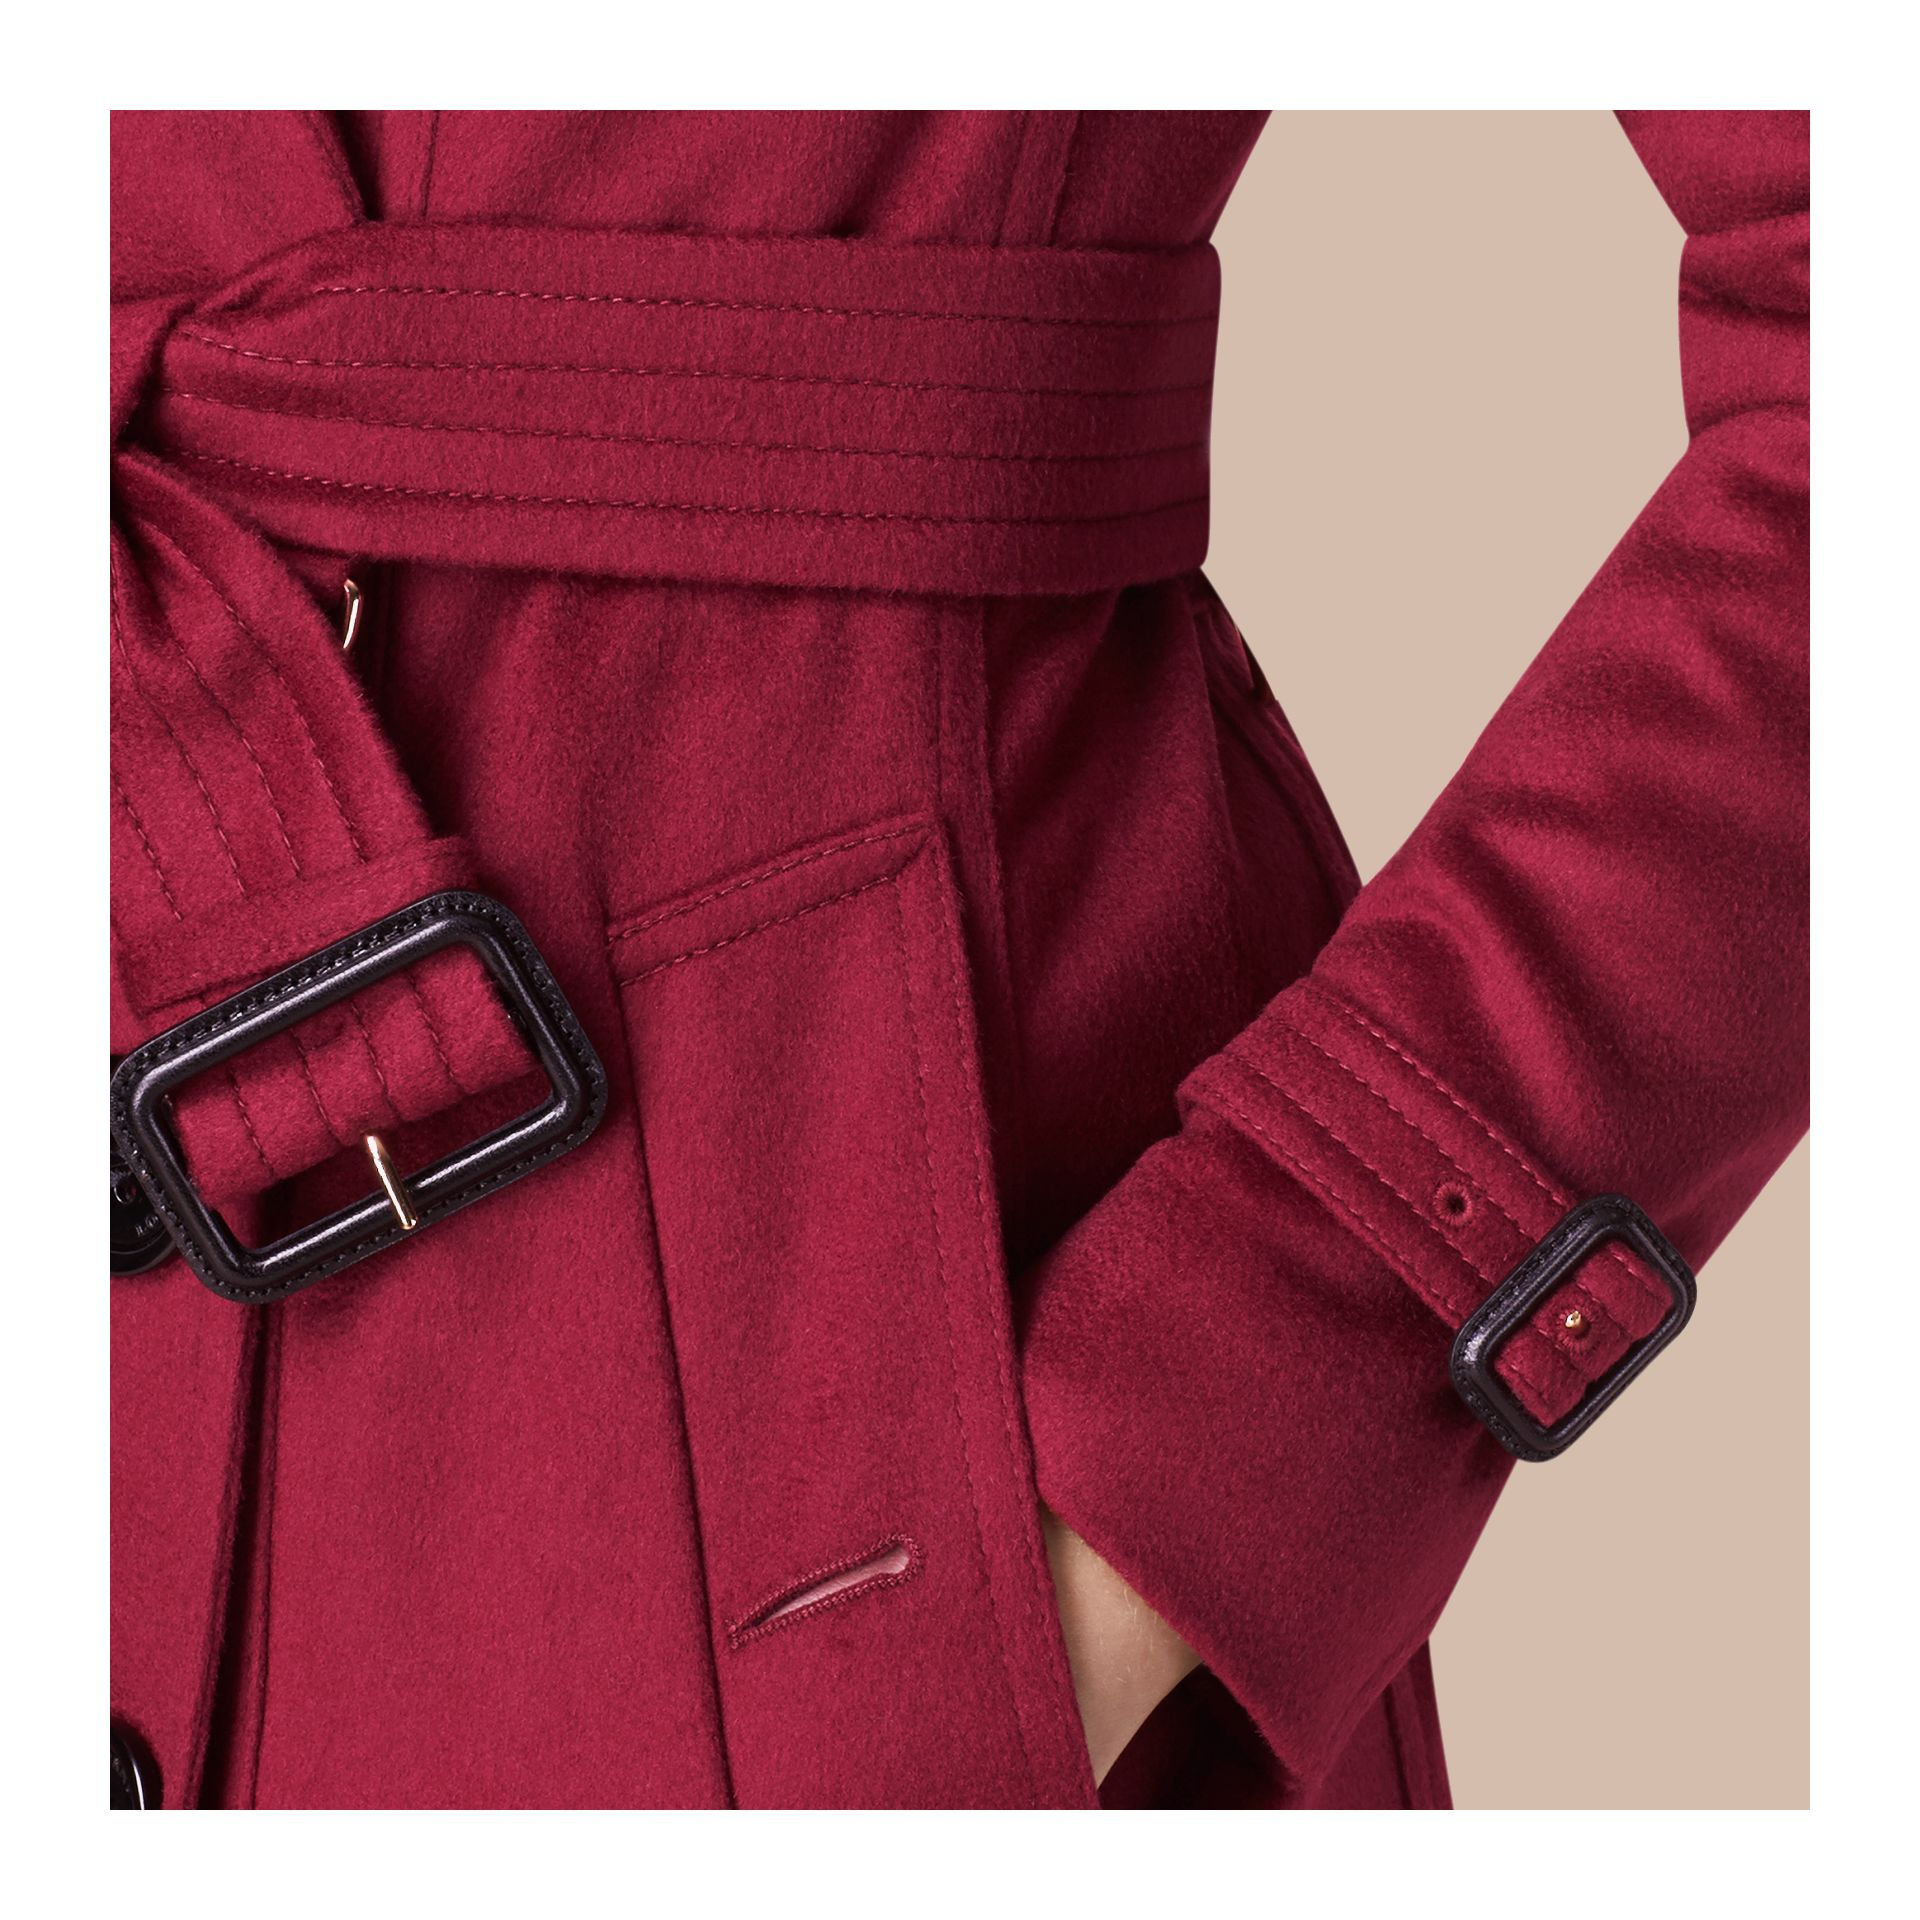 Rose cerise Trench-coat en cachemire de coupe Sandringham Rose Cerise - photo de la galerie 4